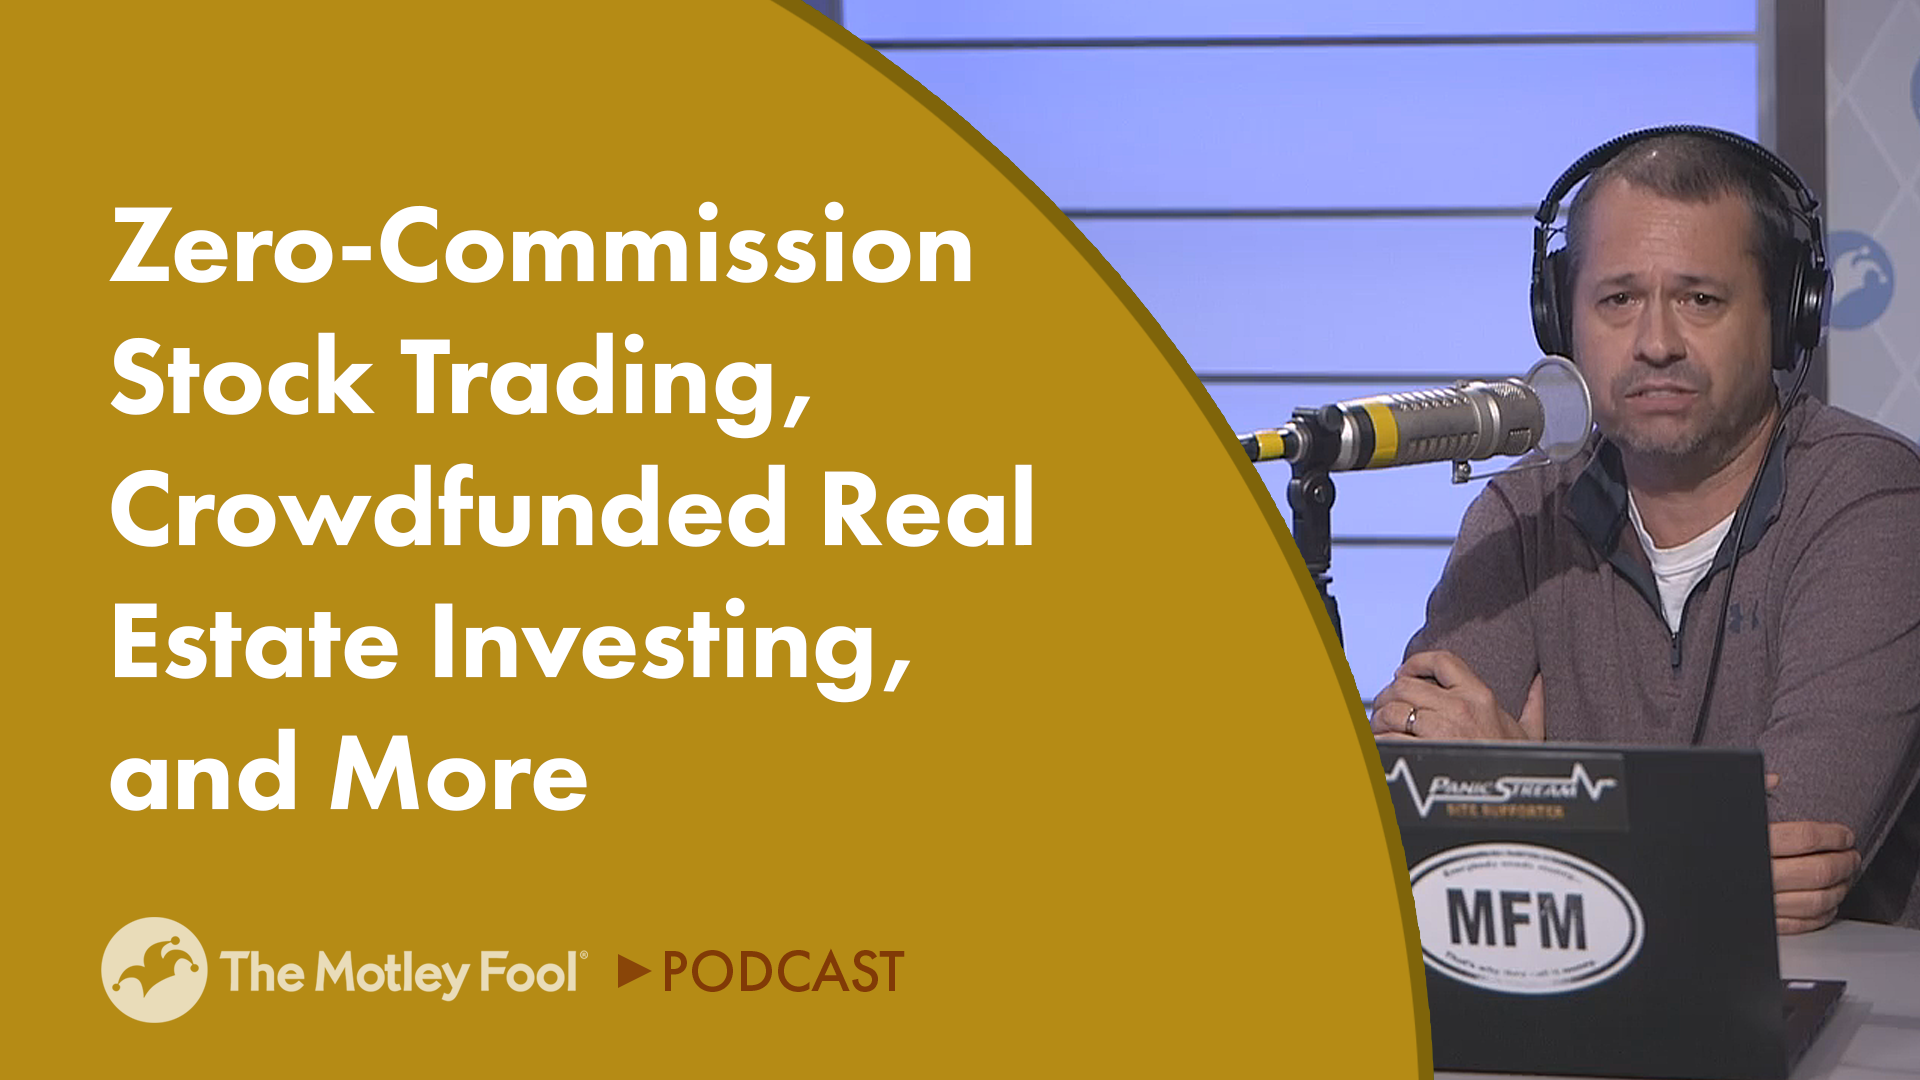 Zero-Commission Stock Trading, Crowdfunded Real Estate Investing, and More